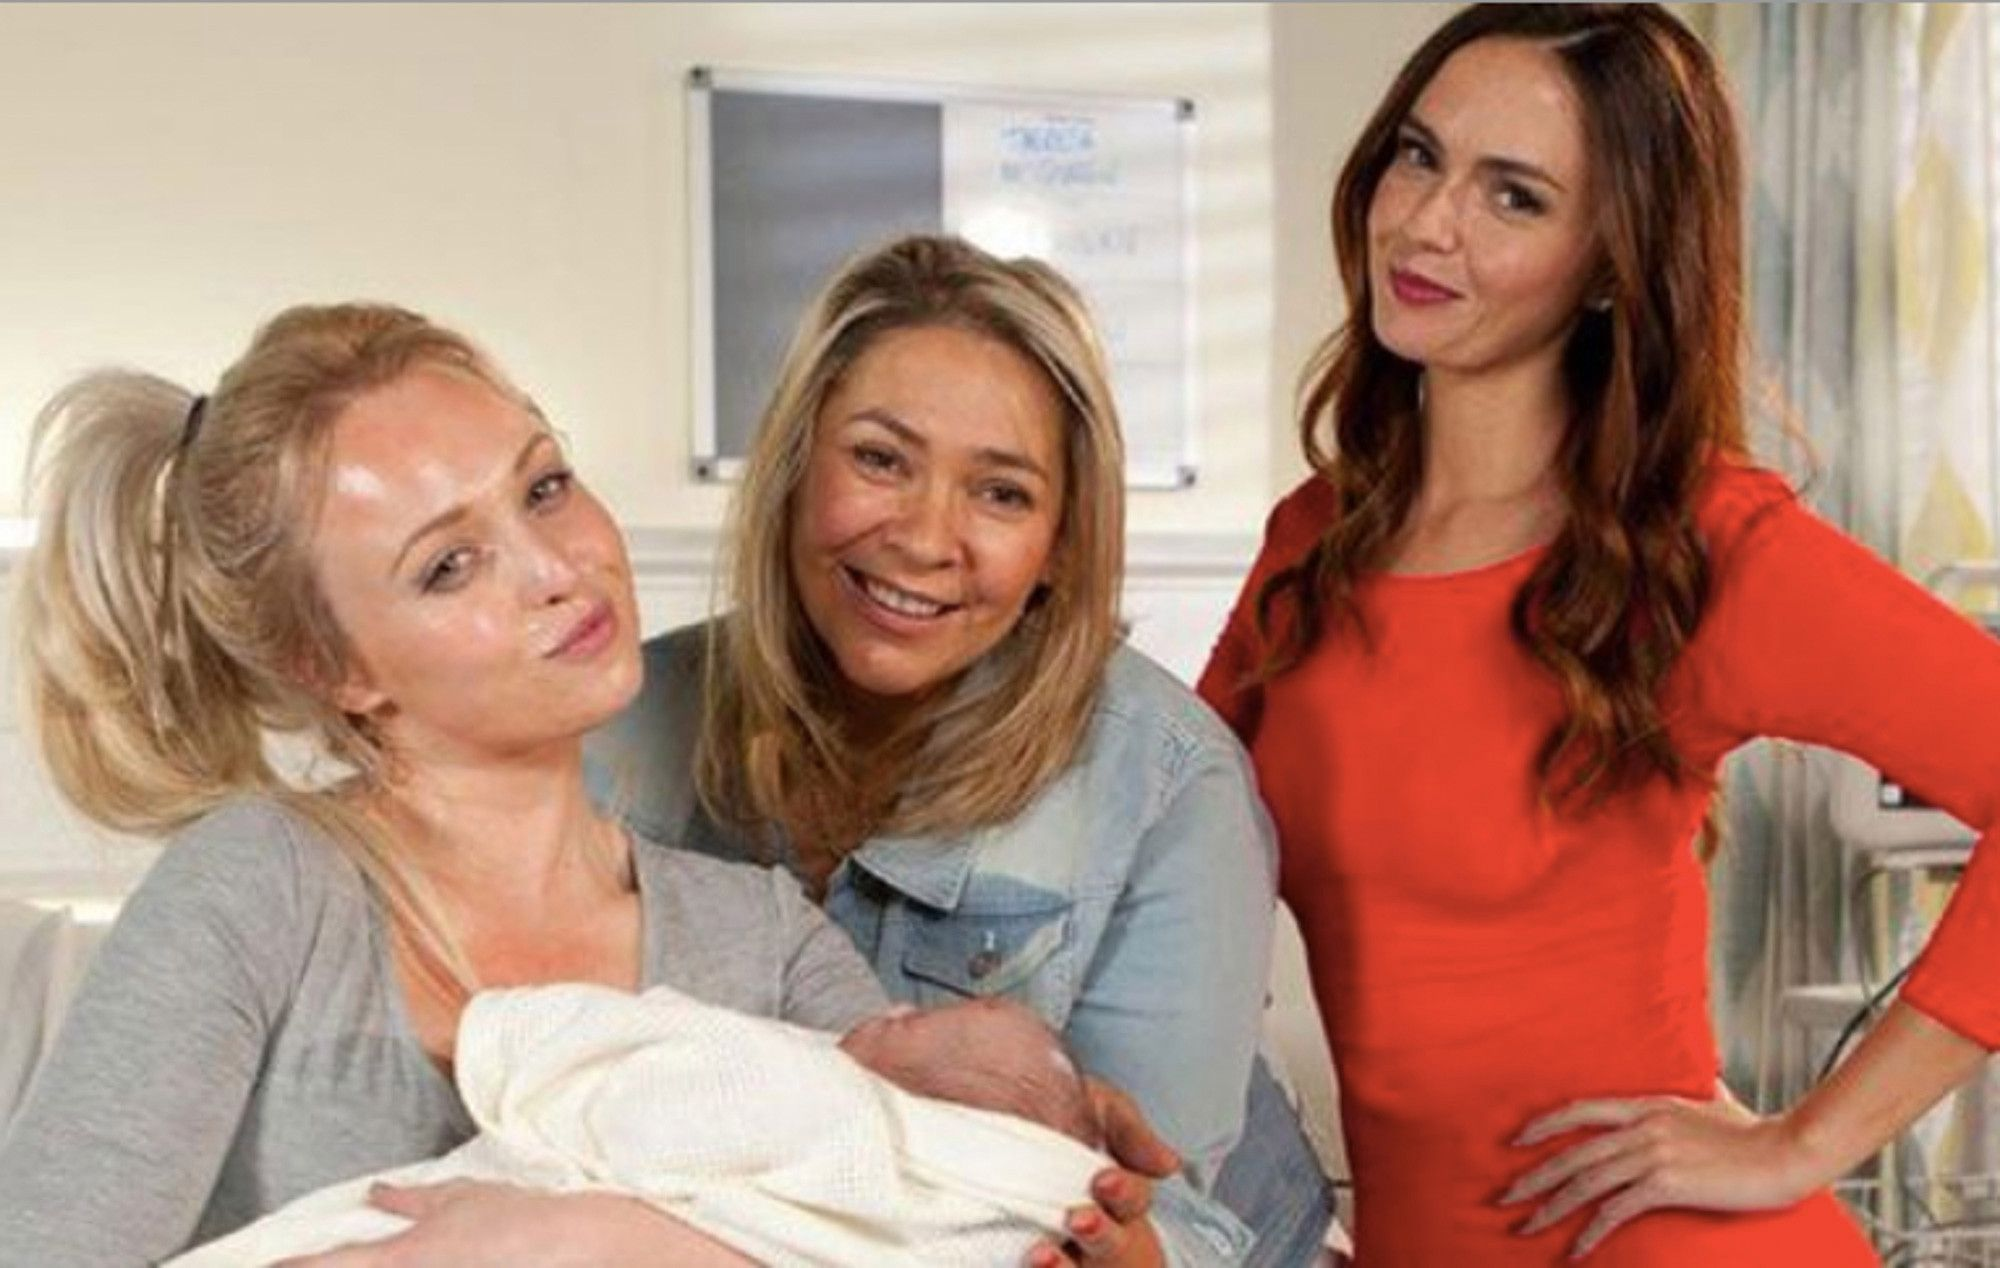 Hollyoaks fans think theresa mcqueens daughter will get